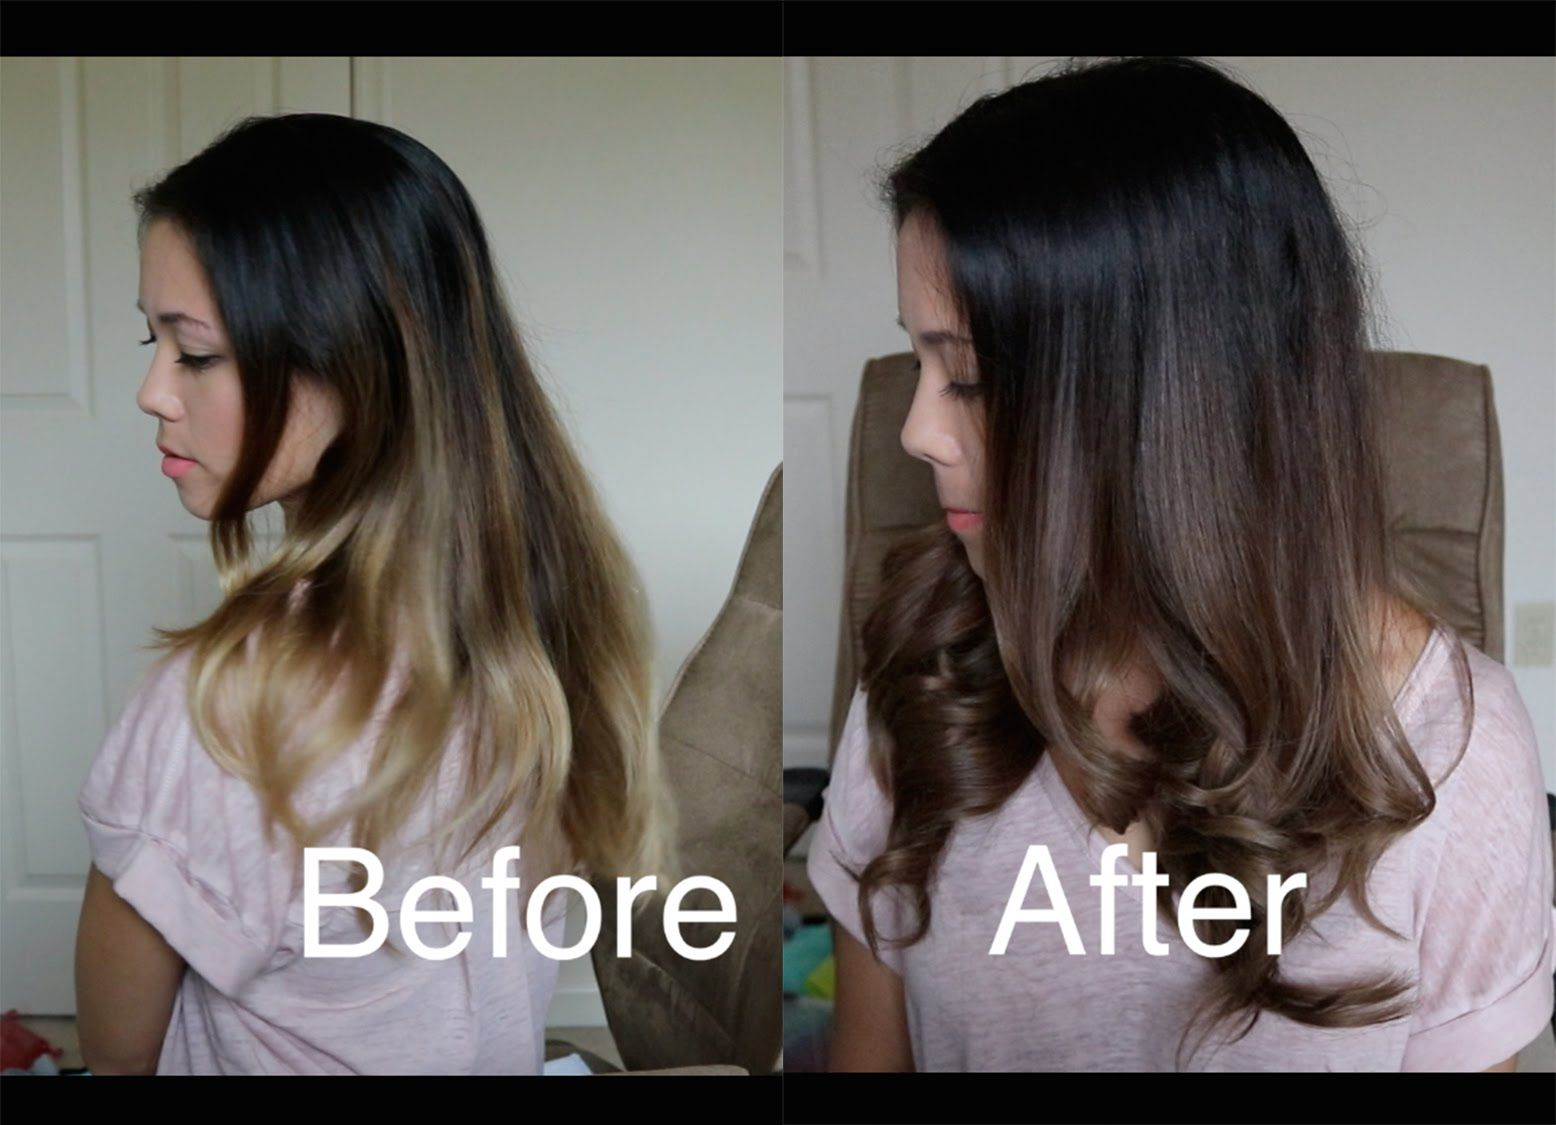 How To Darken An Ombr With Wella Demi Permanent Hair Dye Beauty